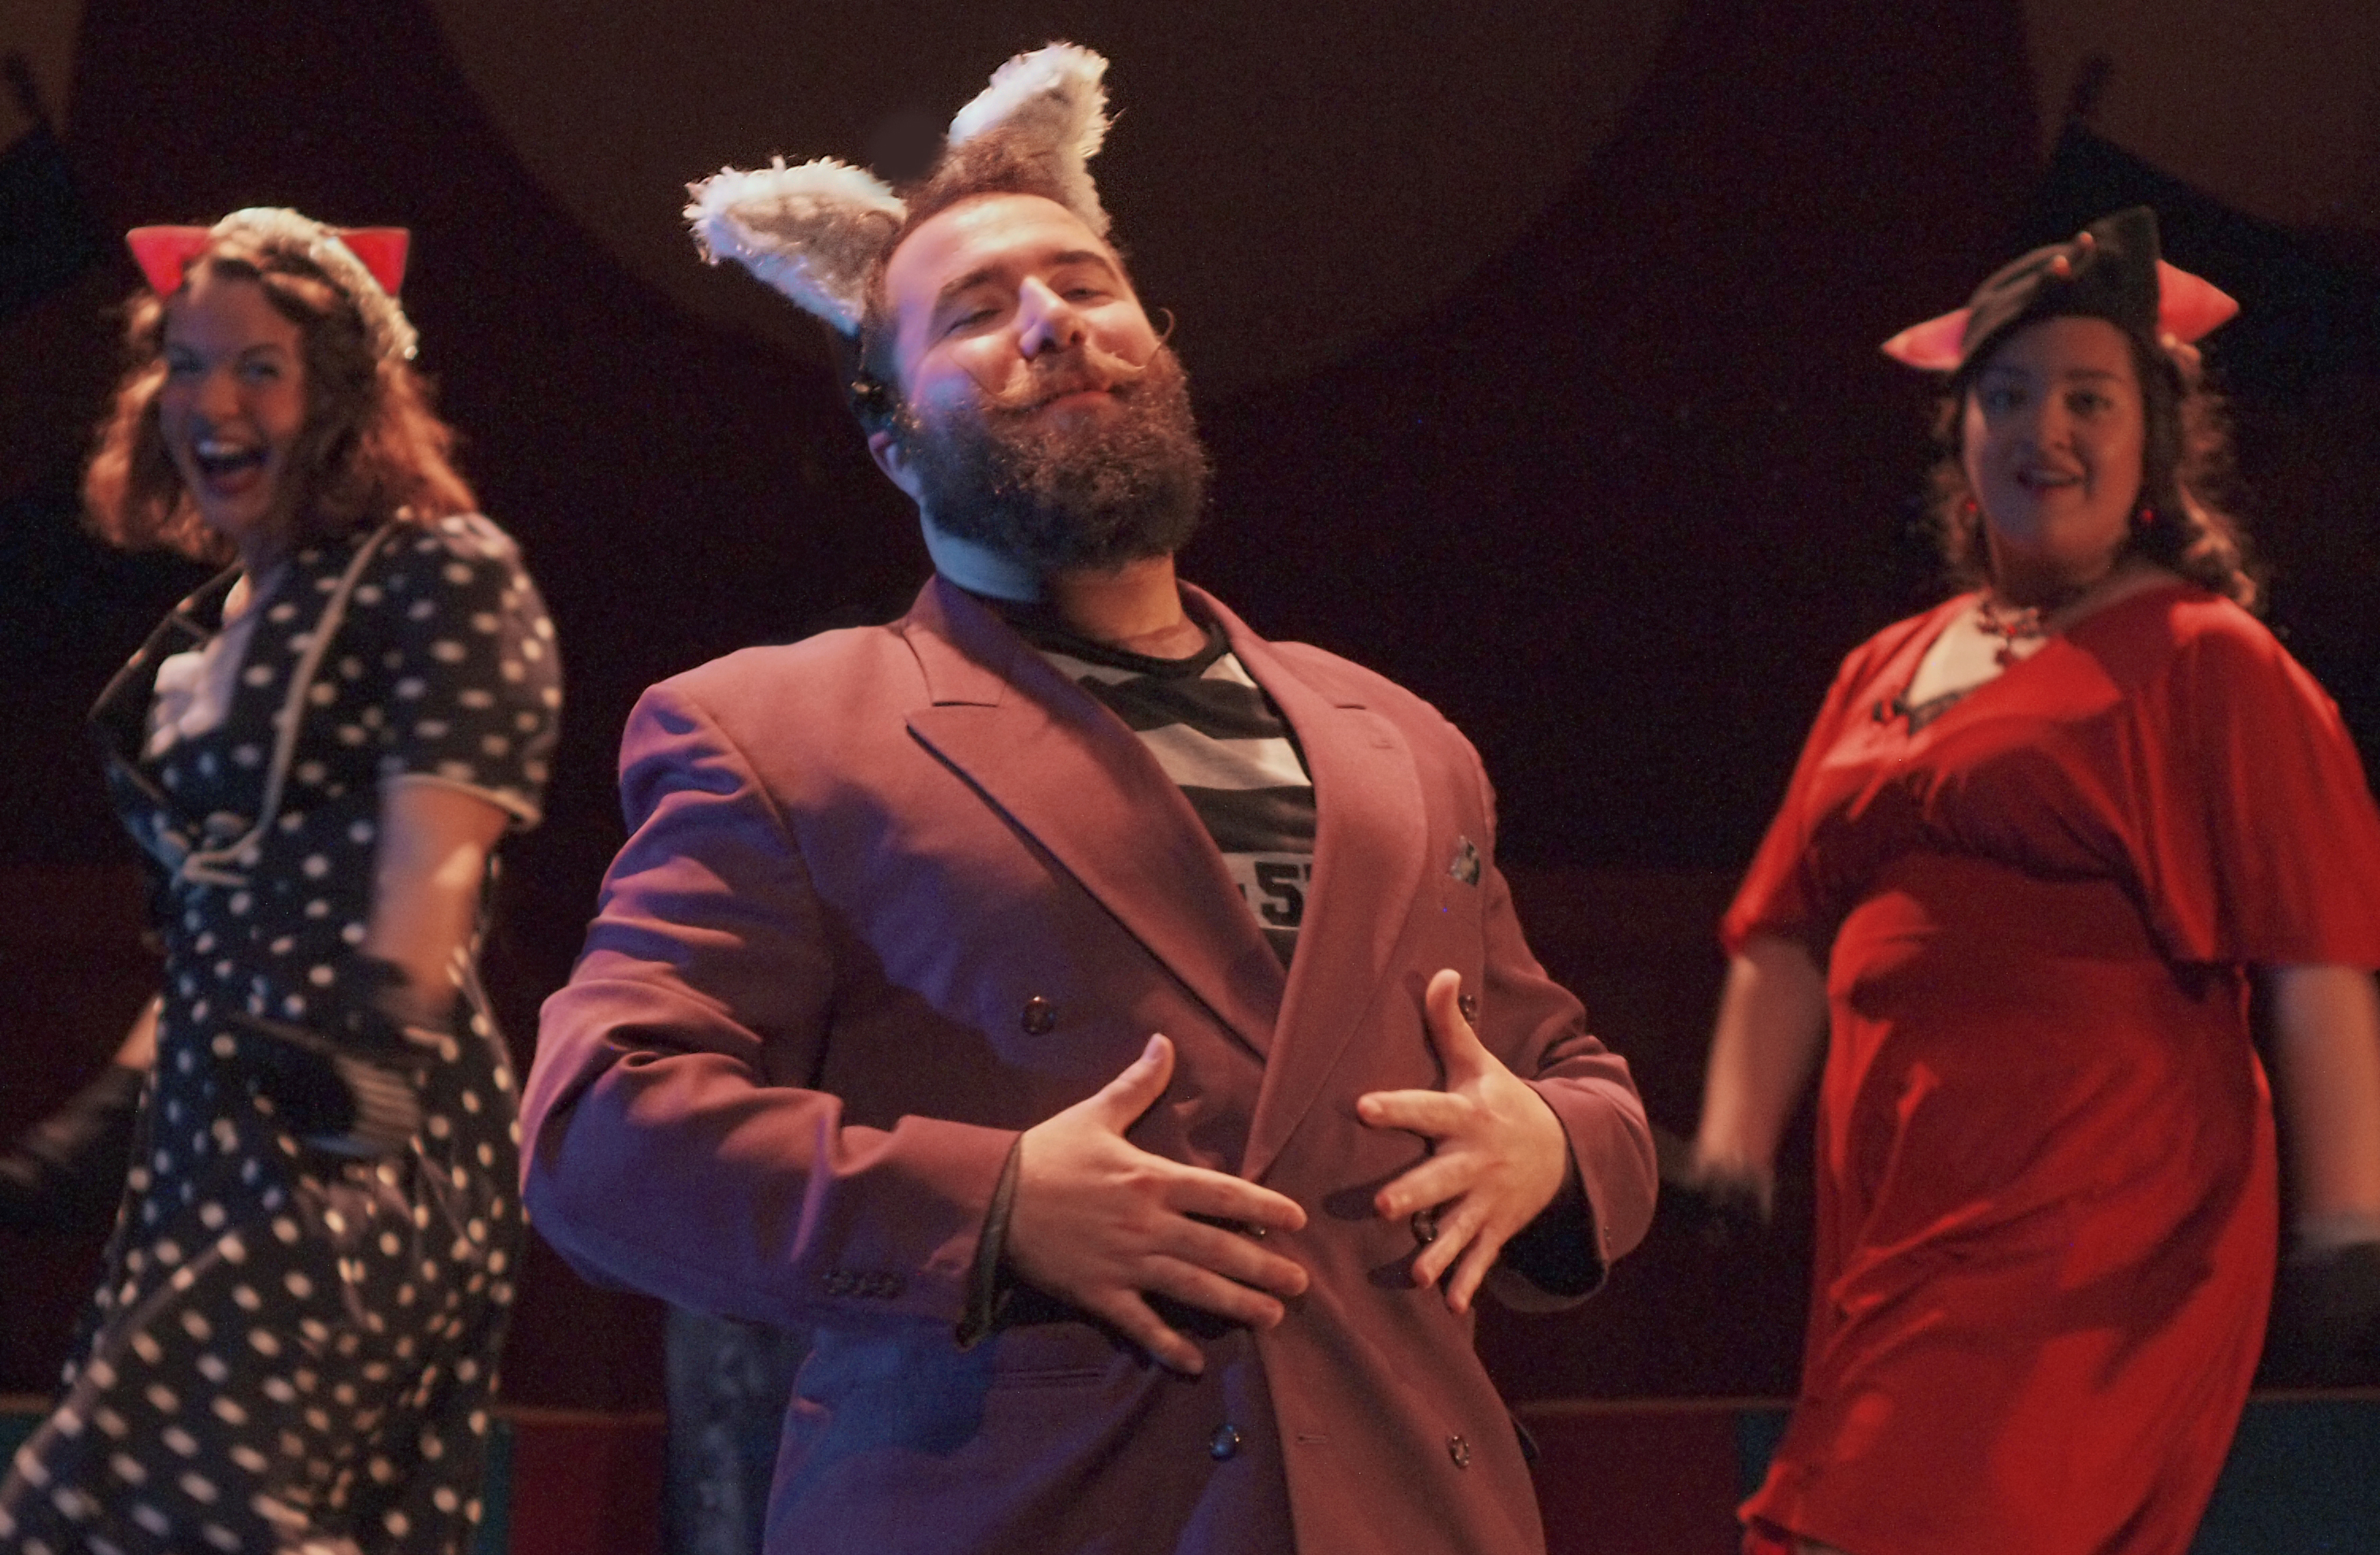 The entire family can enjoy TOY's 'The True Story of the Three Little Pigs' with Jacob Albarella as the Wolf and Sarah Blewett and Jennel Pruneda as Piggie backup singers.